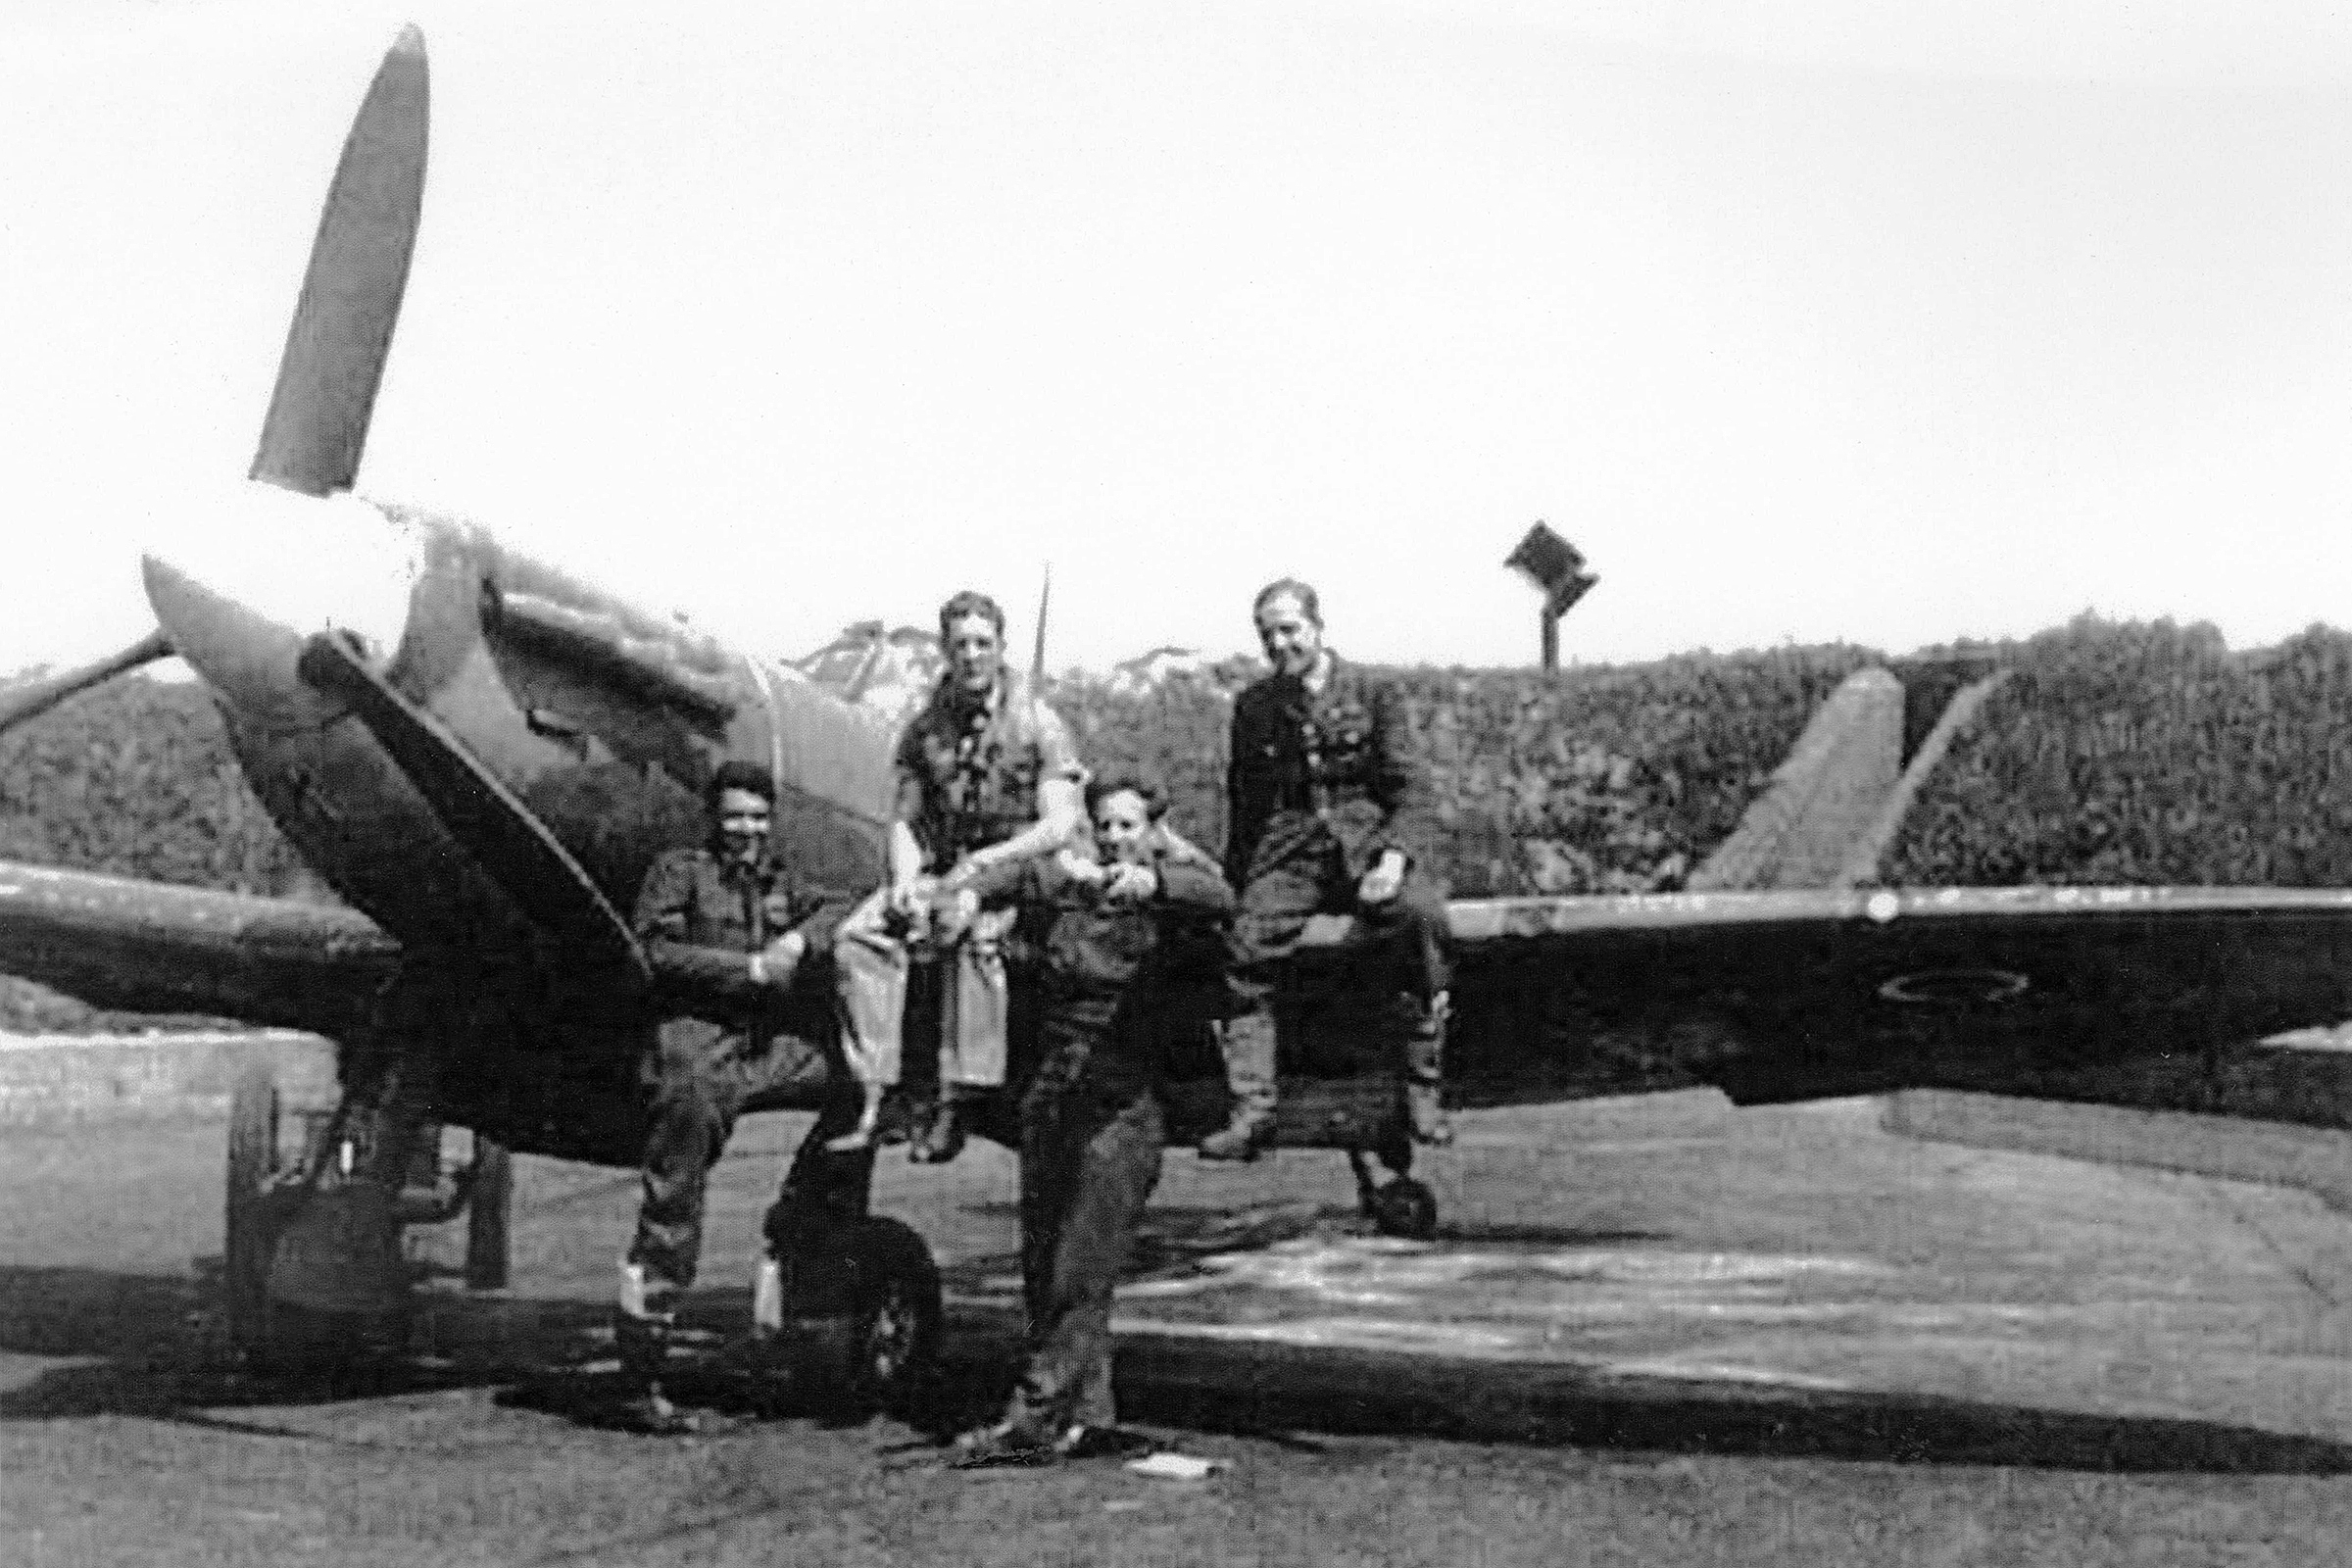 In a black-and-white photograph, two young men in uniform sit on the leading edge of the wing of a vintage propeller aircraft, and two more stand in front of the wing.